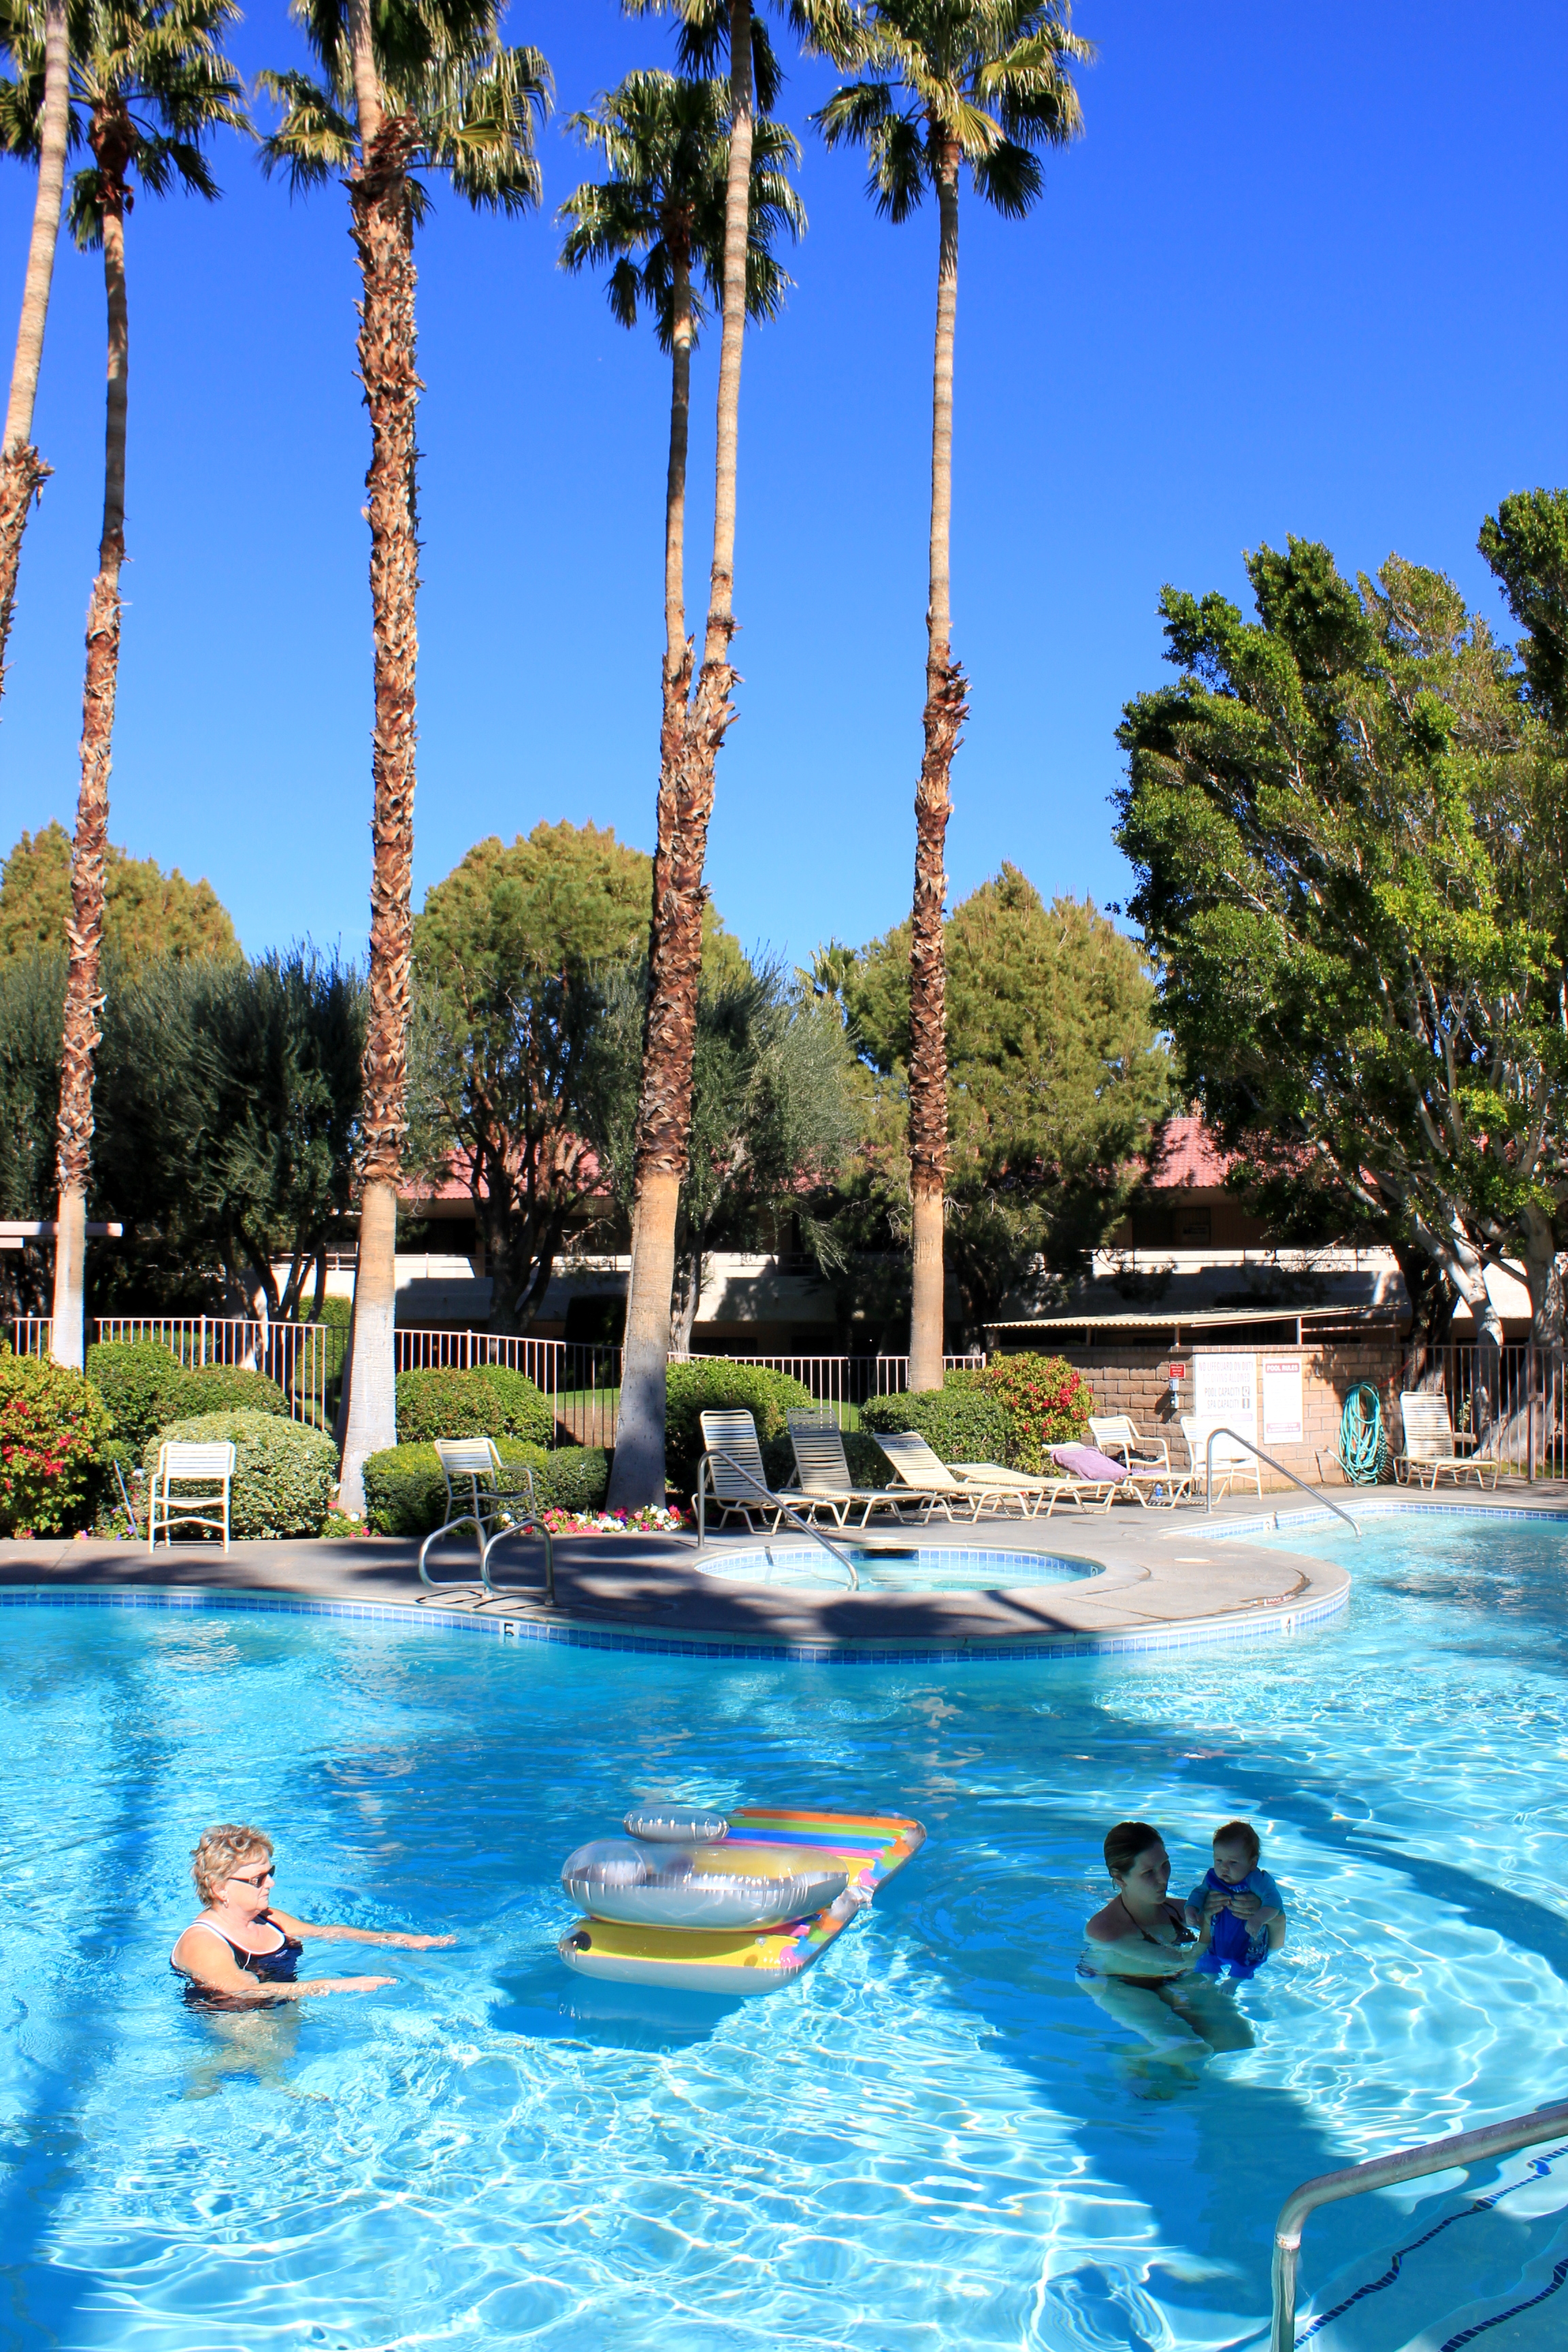 First family trip to palm springs tips for baby travel for Travel to palm springs